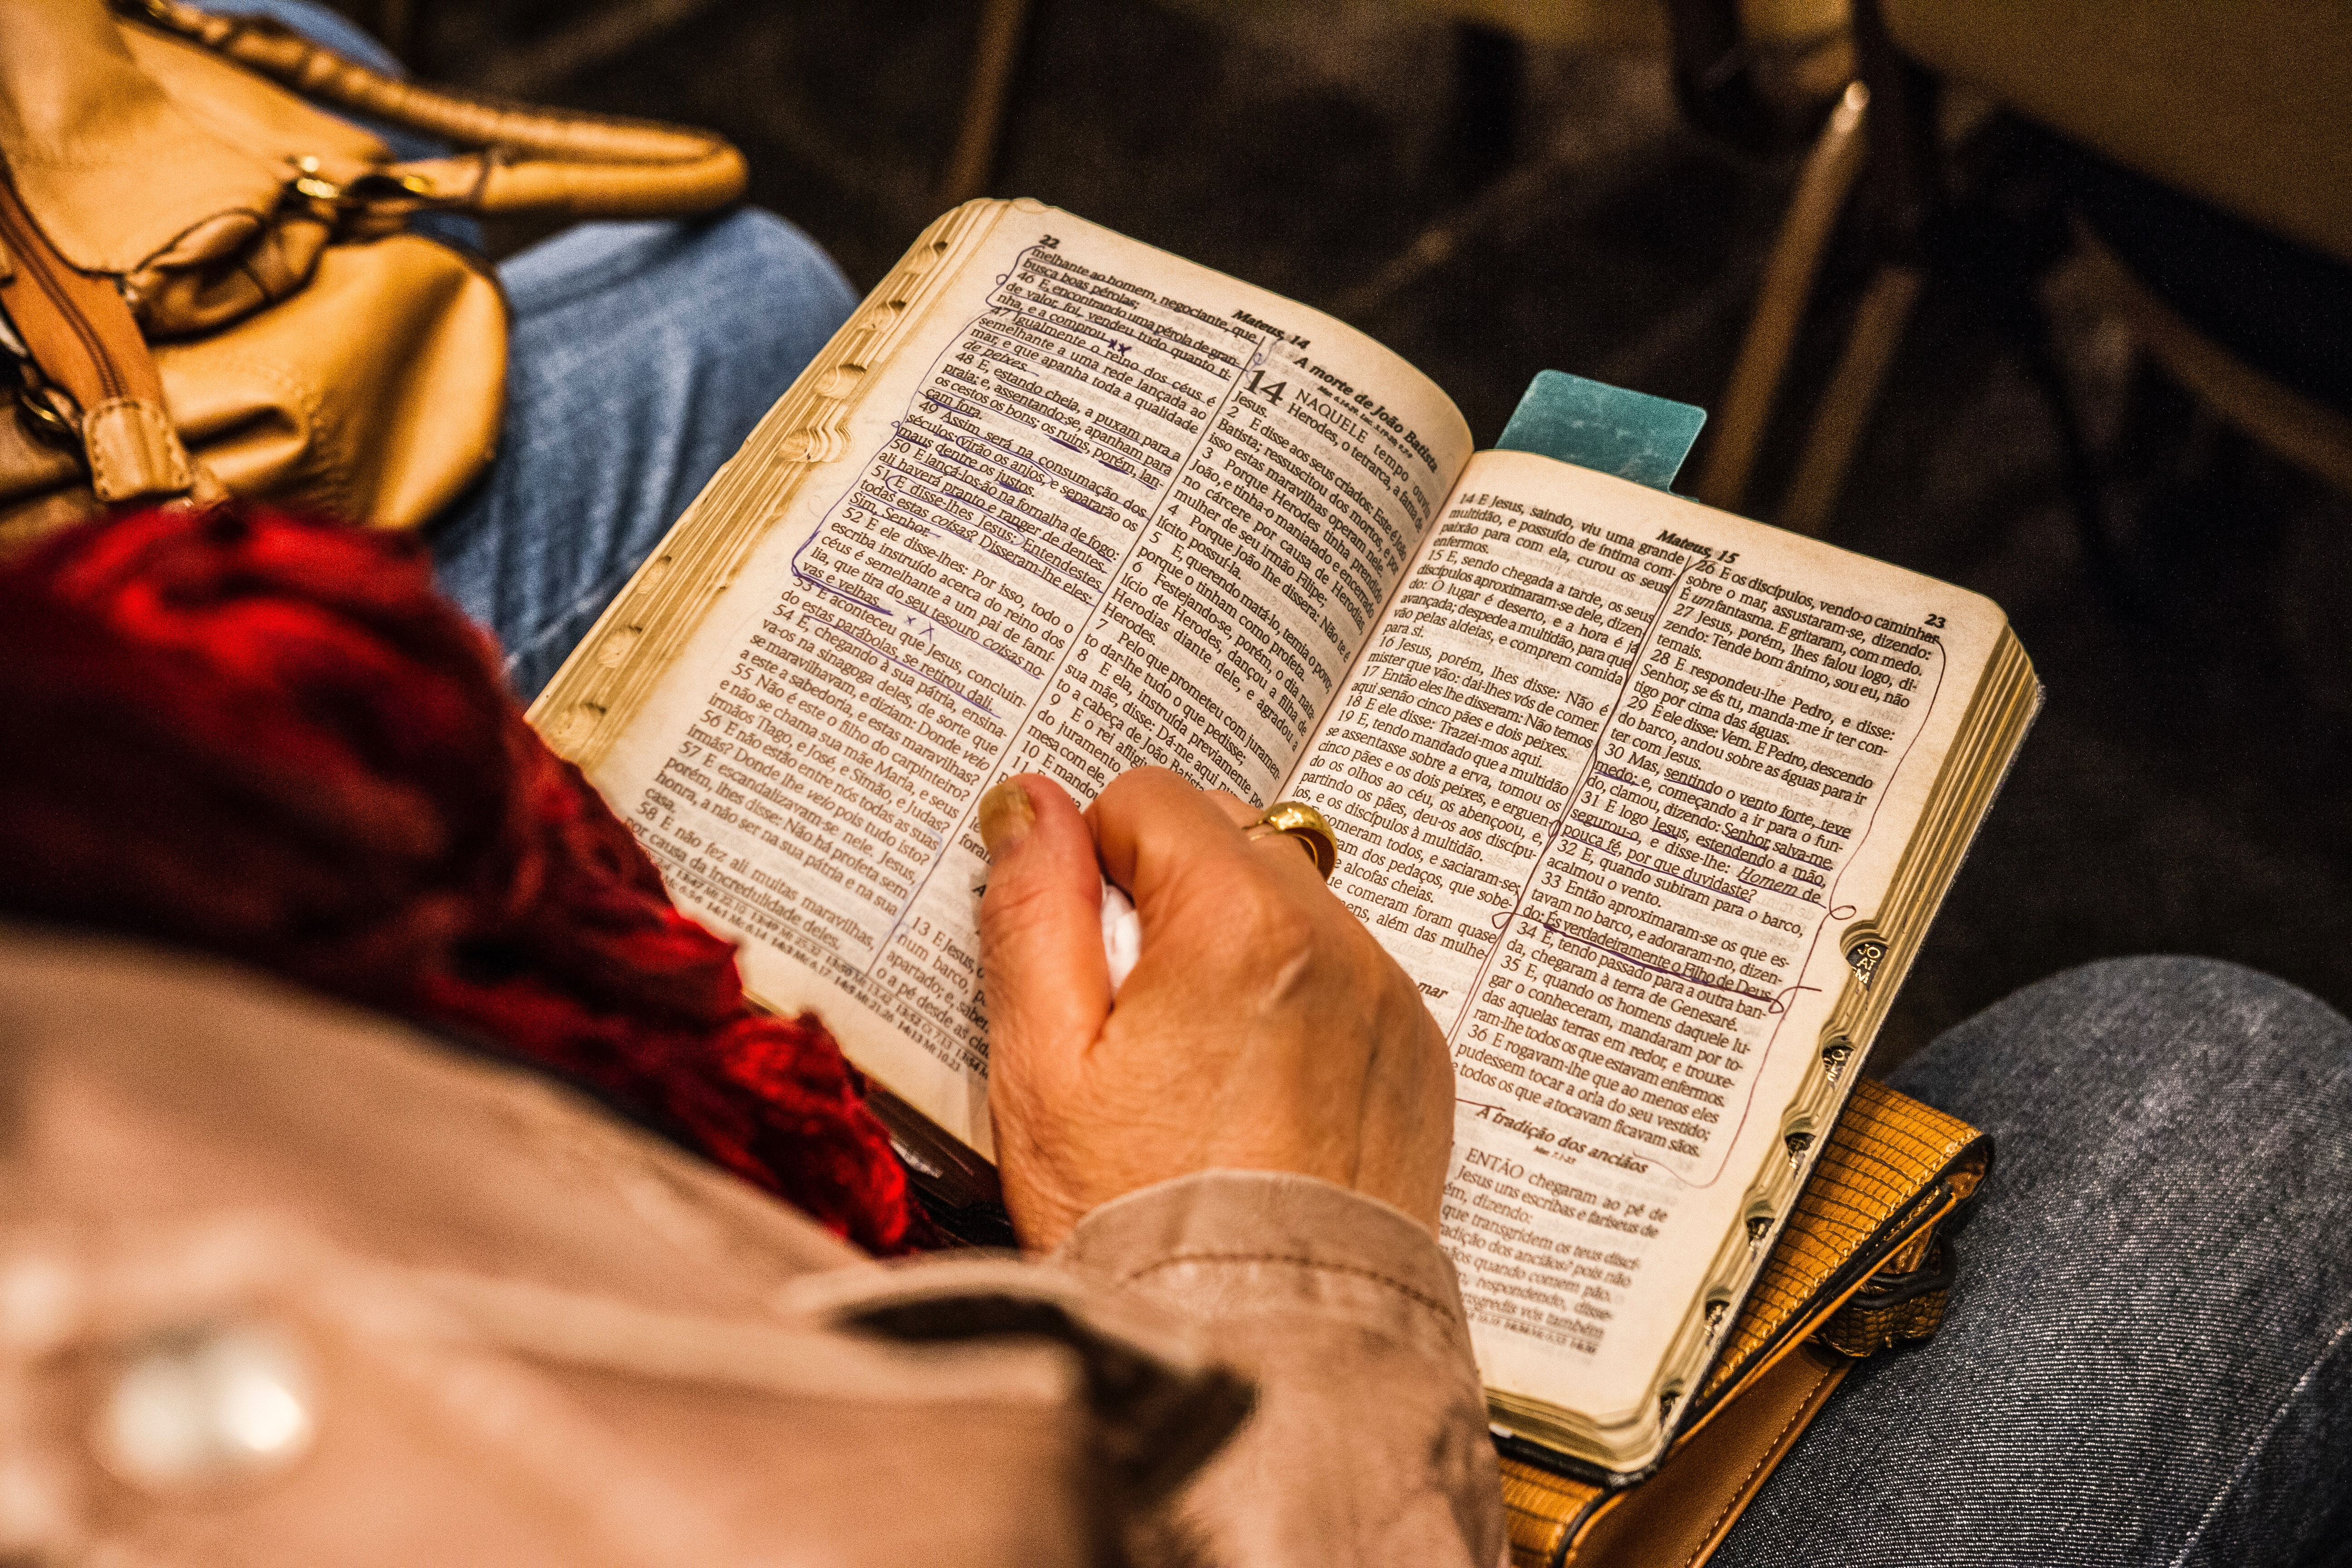 Elderly person reading old marked-up religious book